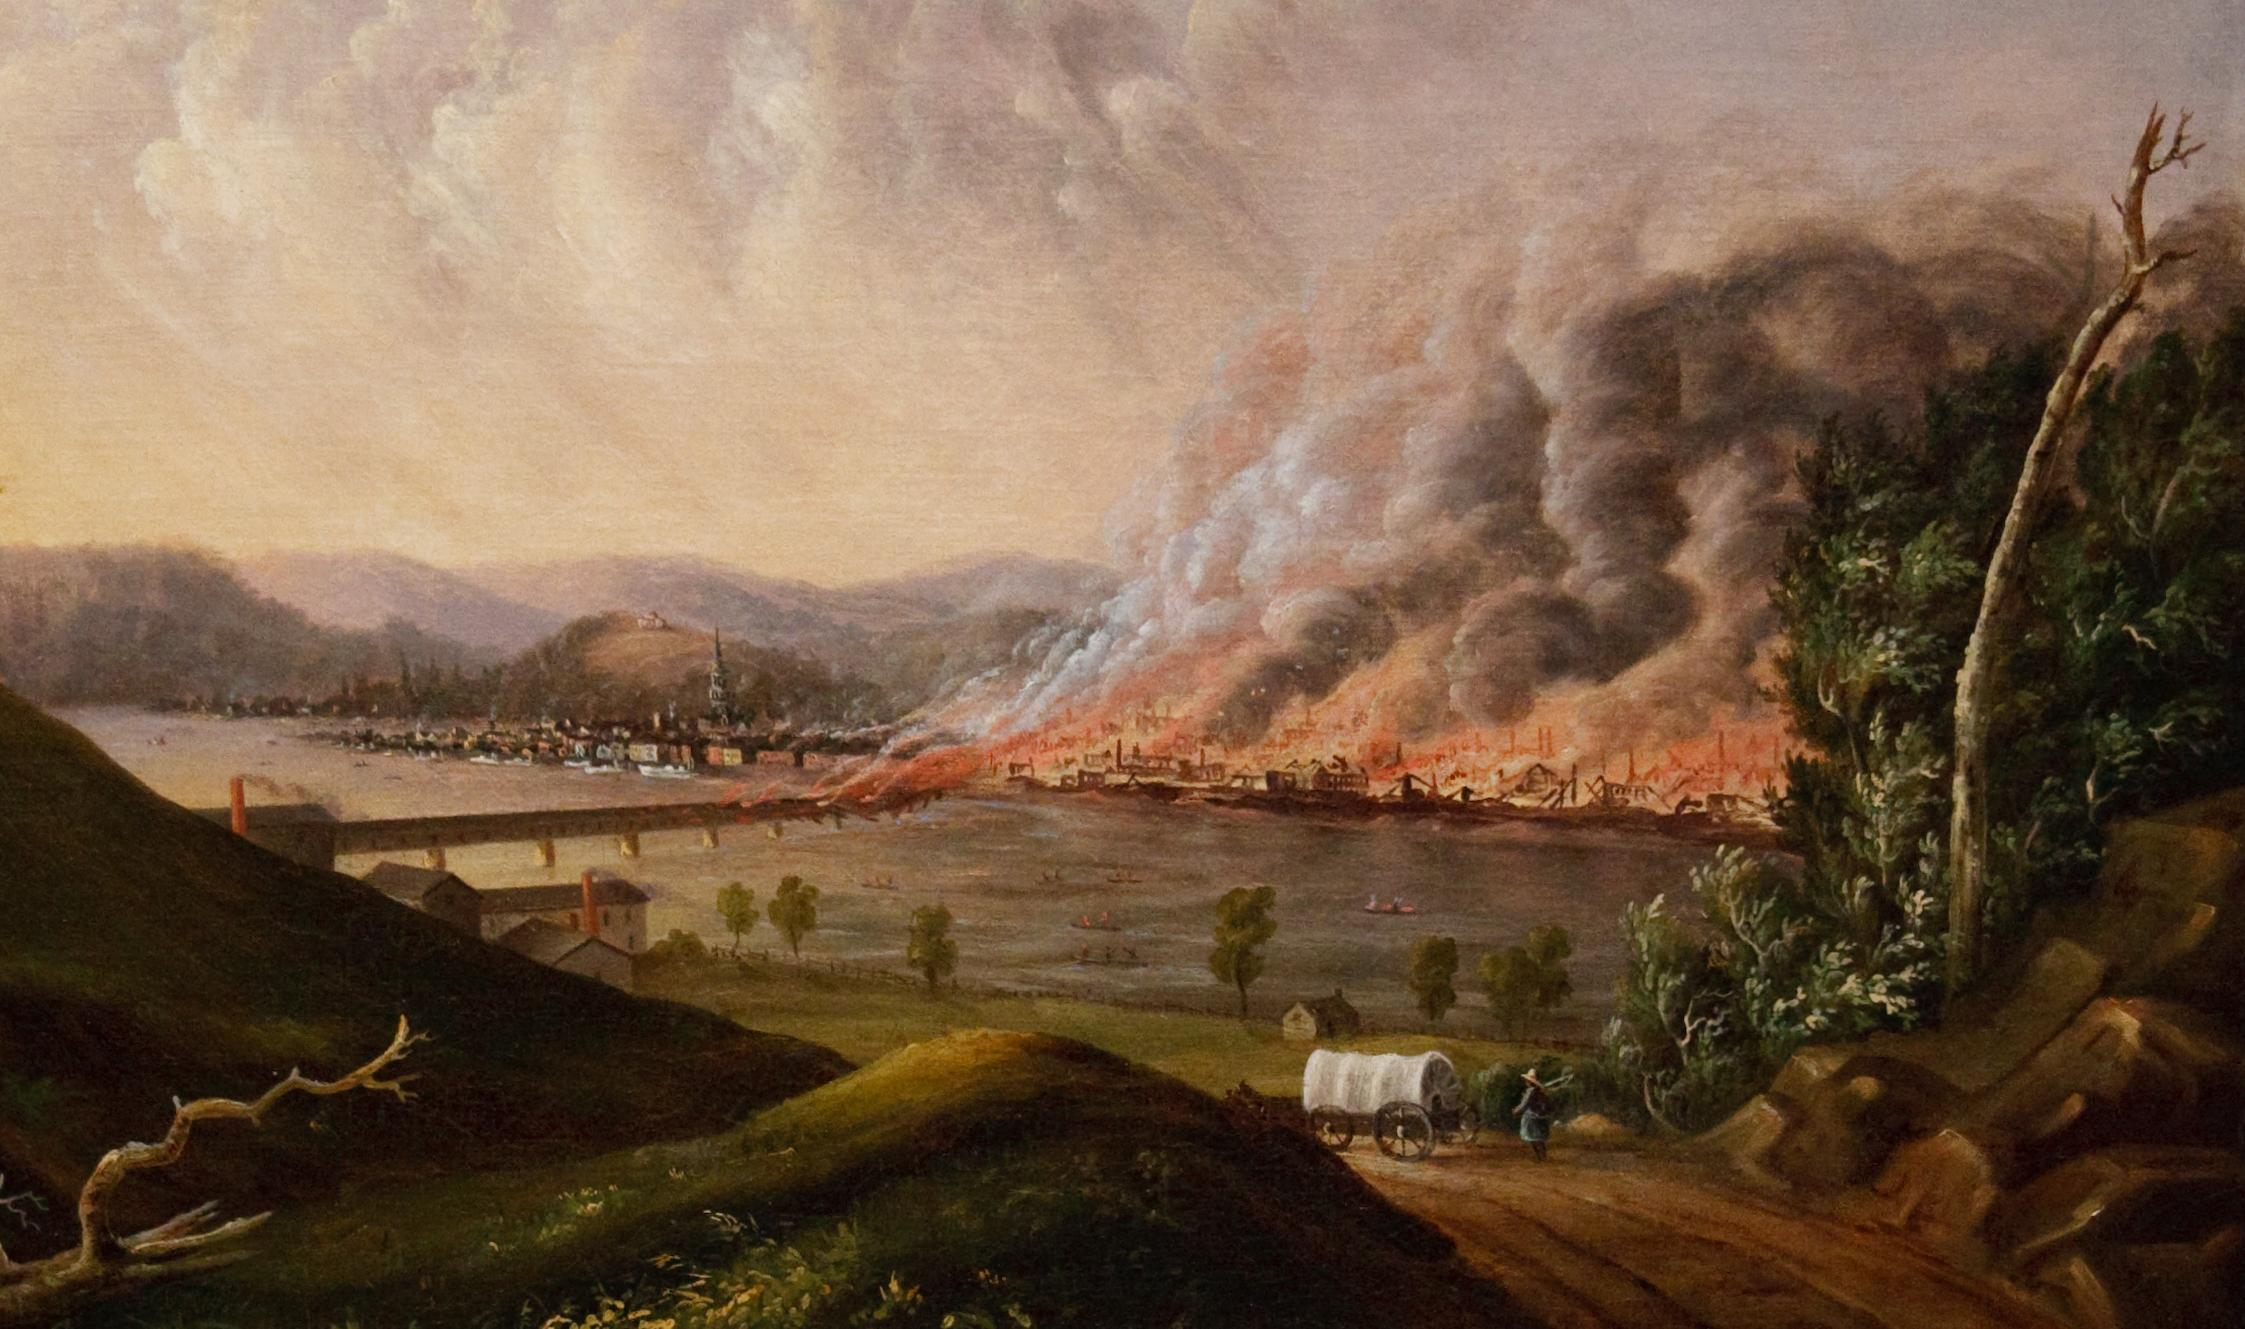 WLA_cma_View_of_the_Great_Fire_of_Pittsburgh_1846_detail